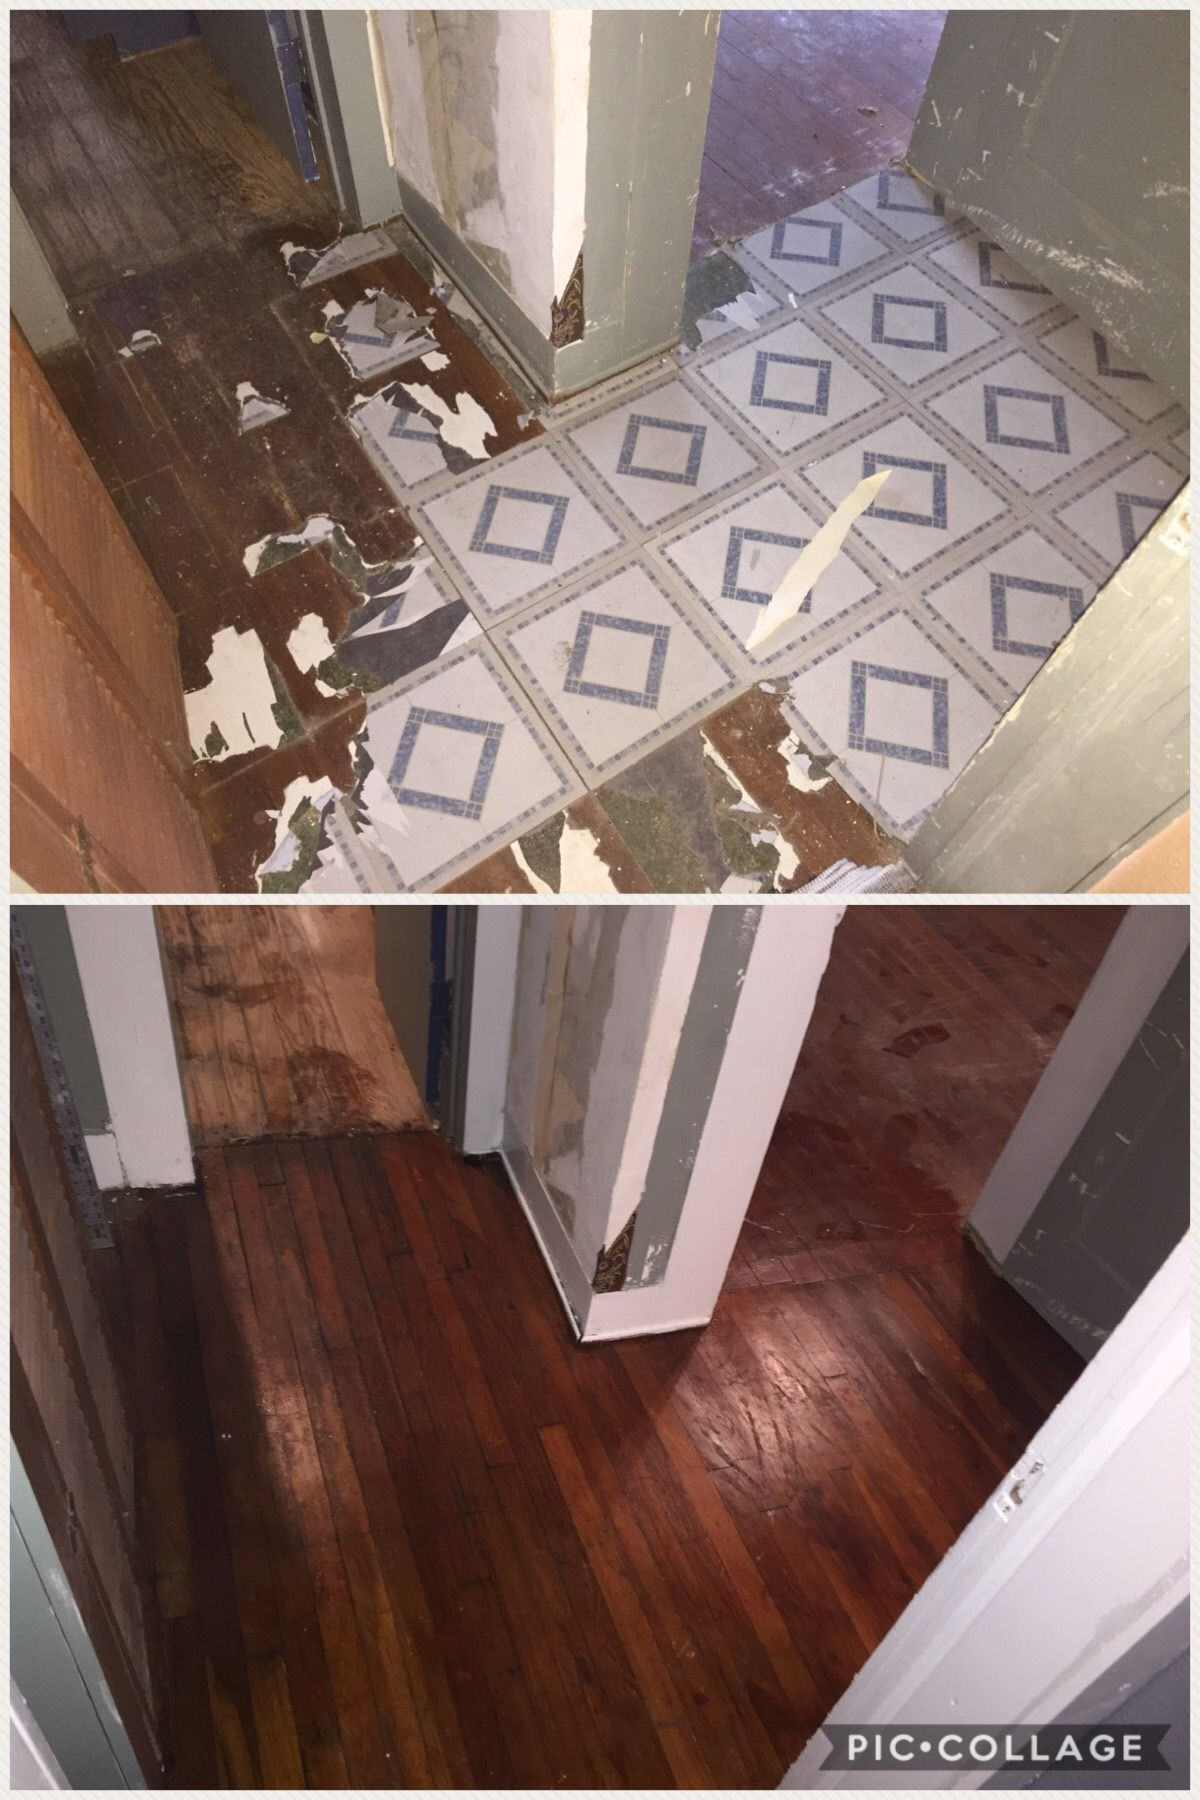 Removed Yr Old Vinyl Tile Floor Adhesive With Cooking Oil Poured - How to clean oil off tile floor